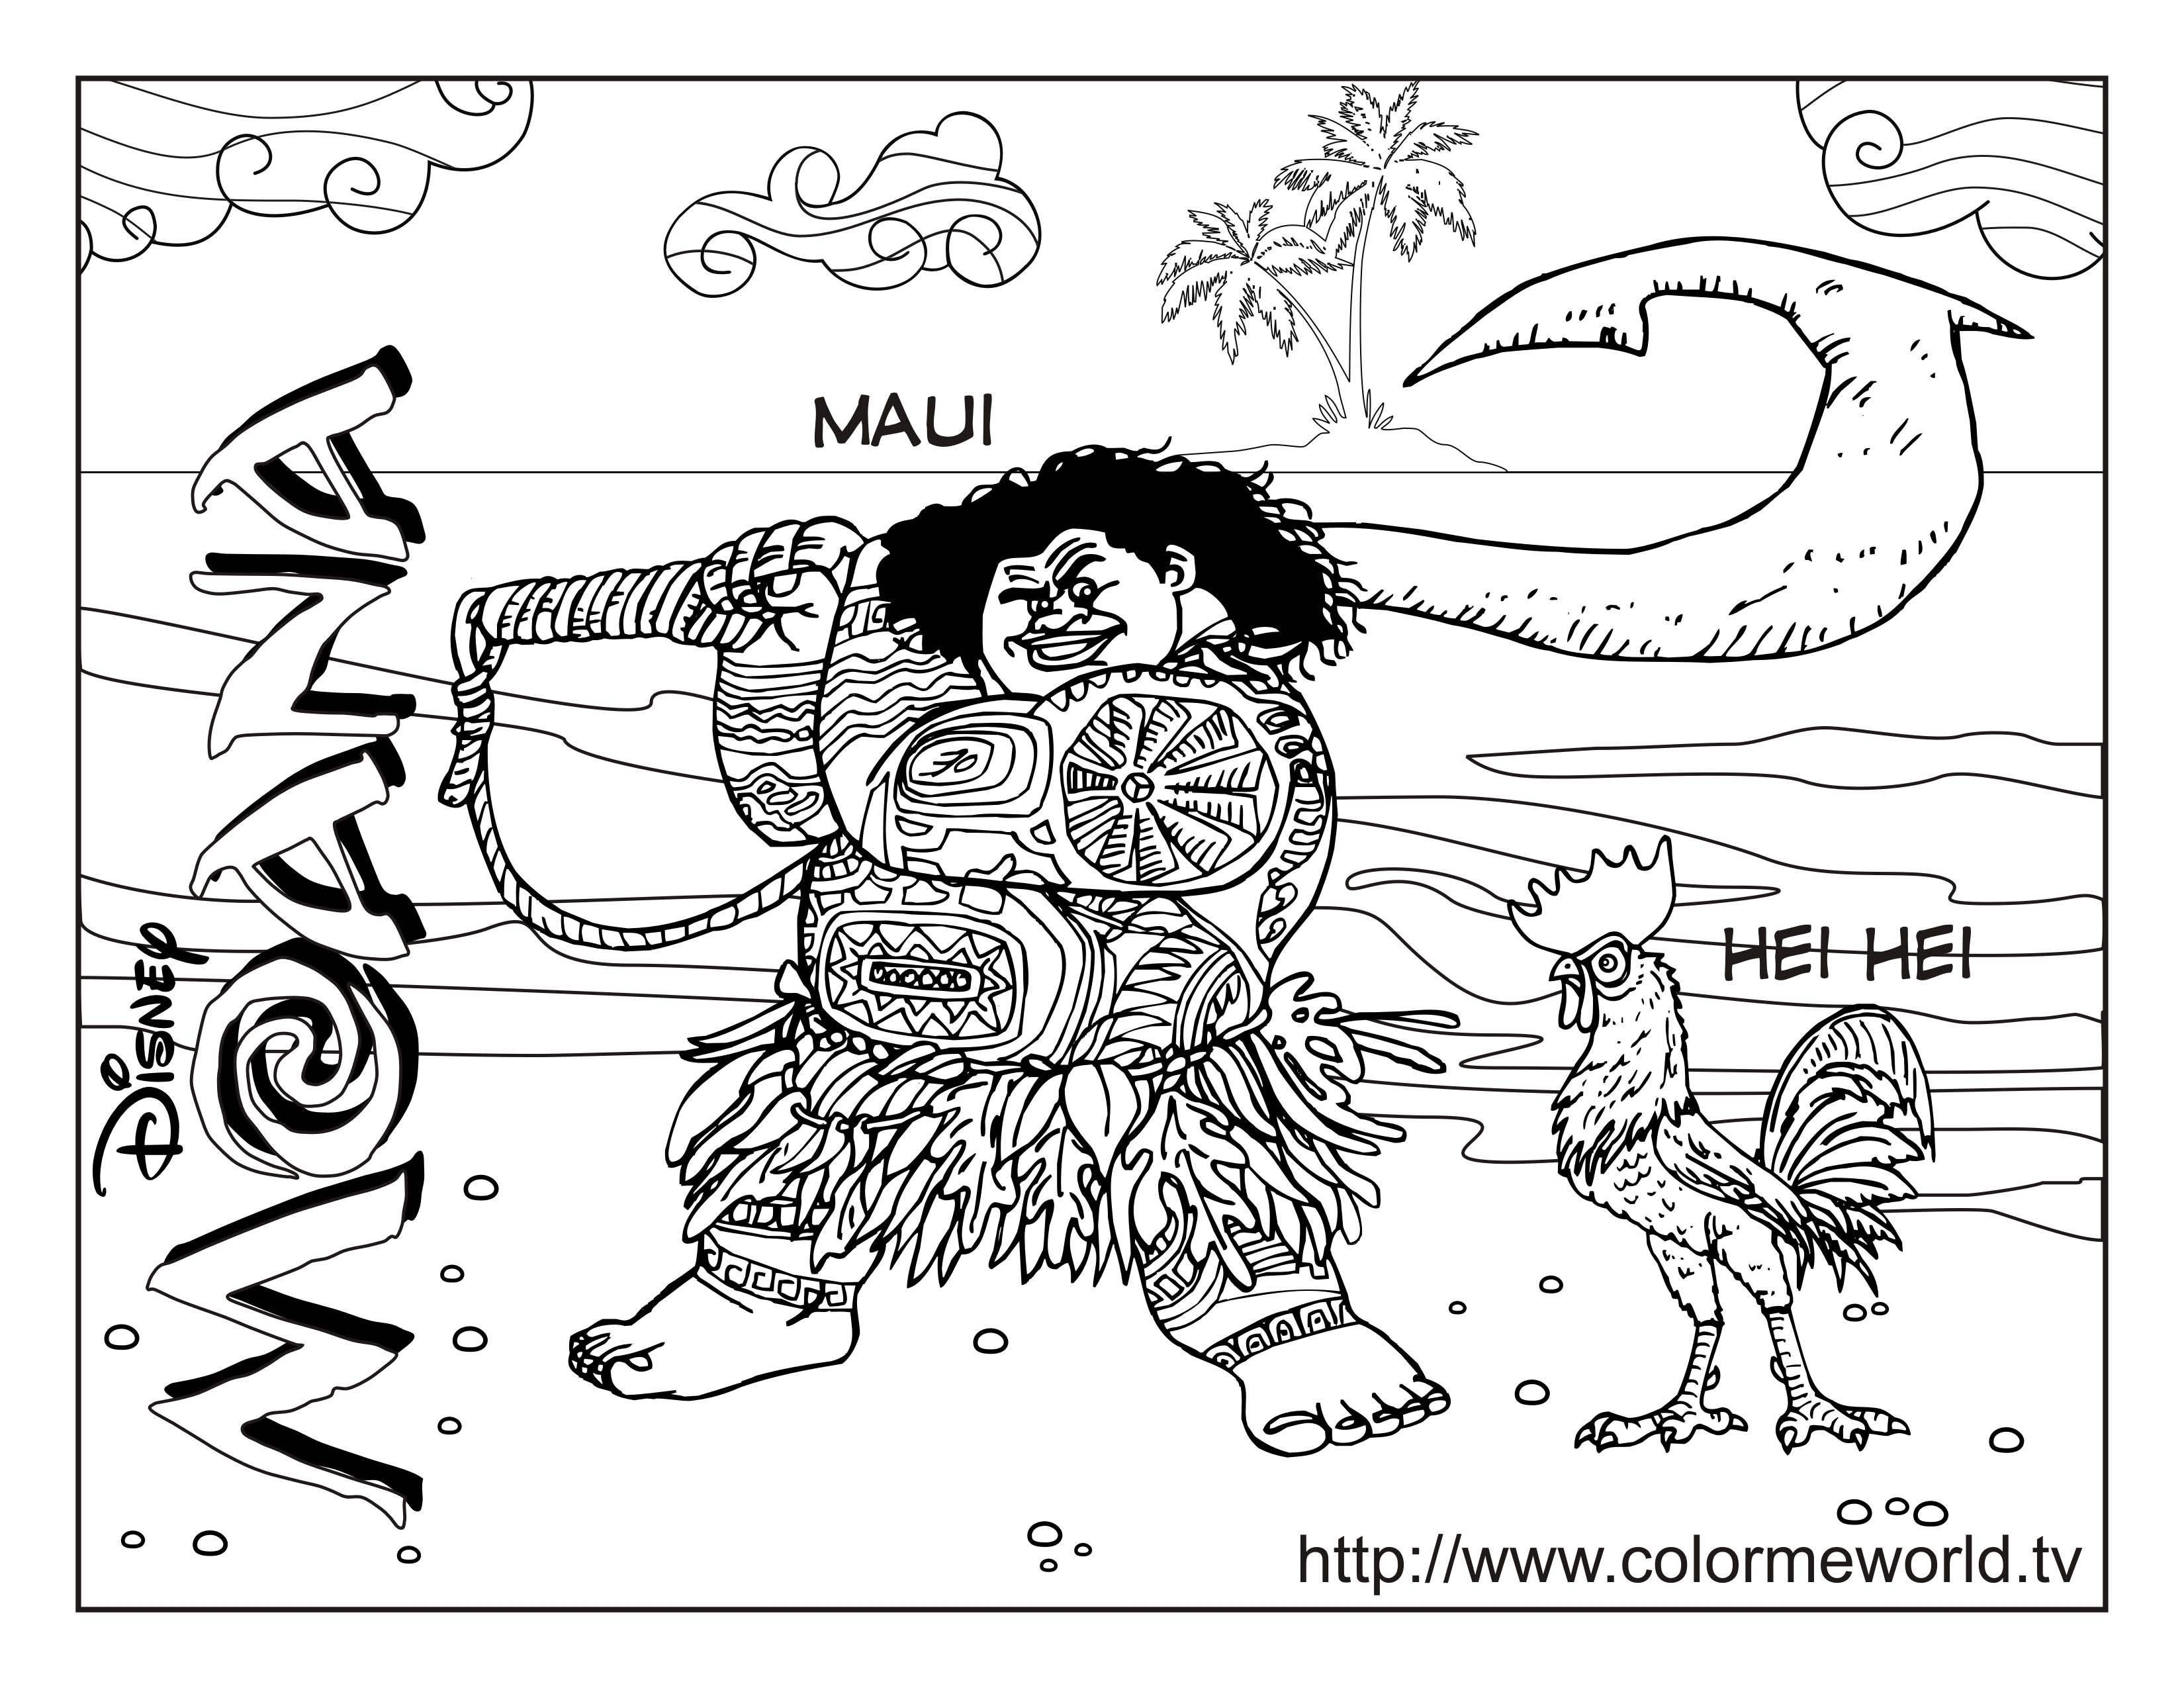 Moana Coloring Pages - Coloring Home